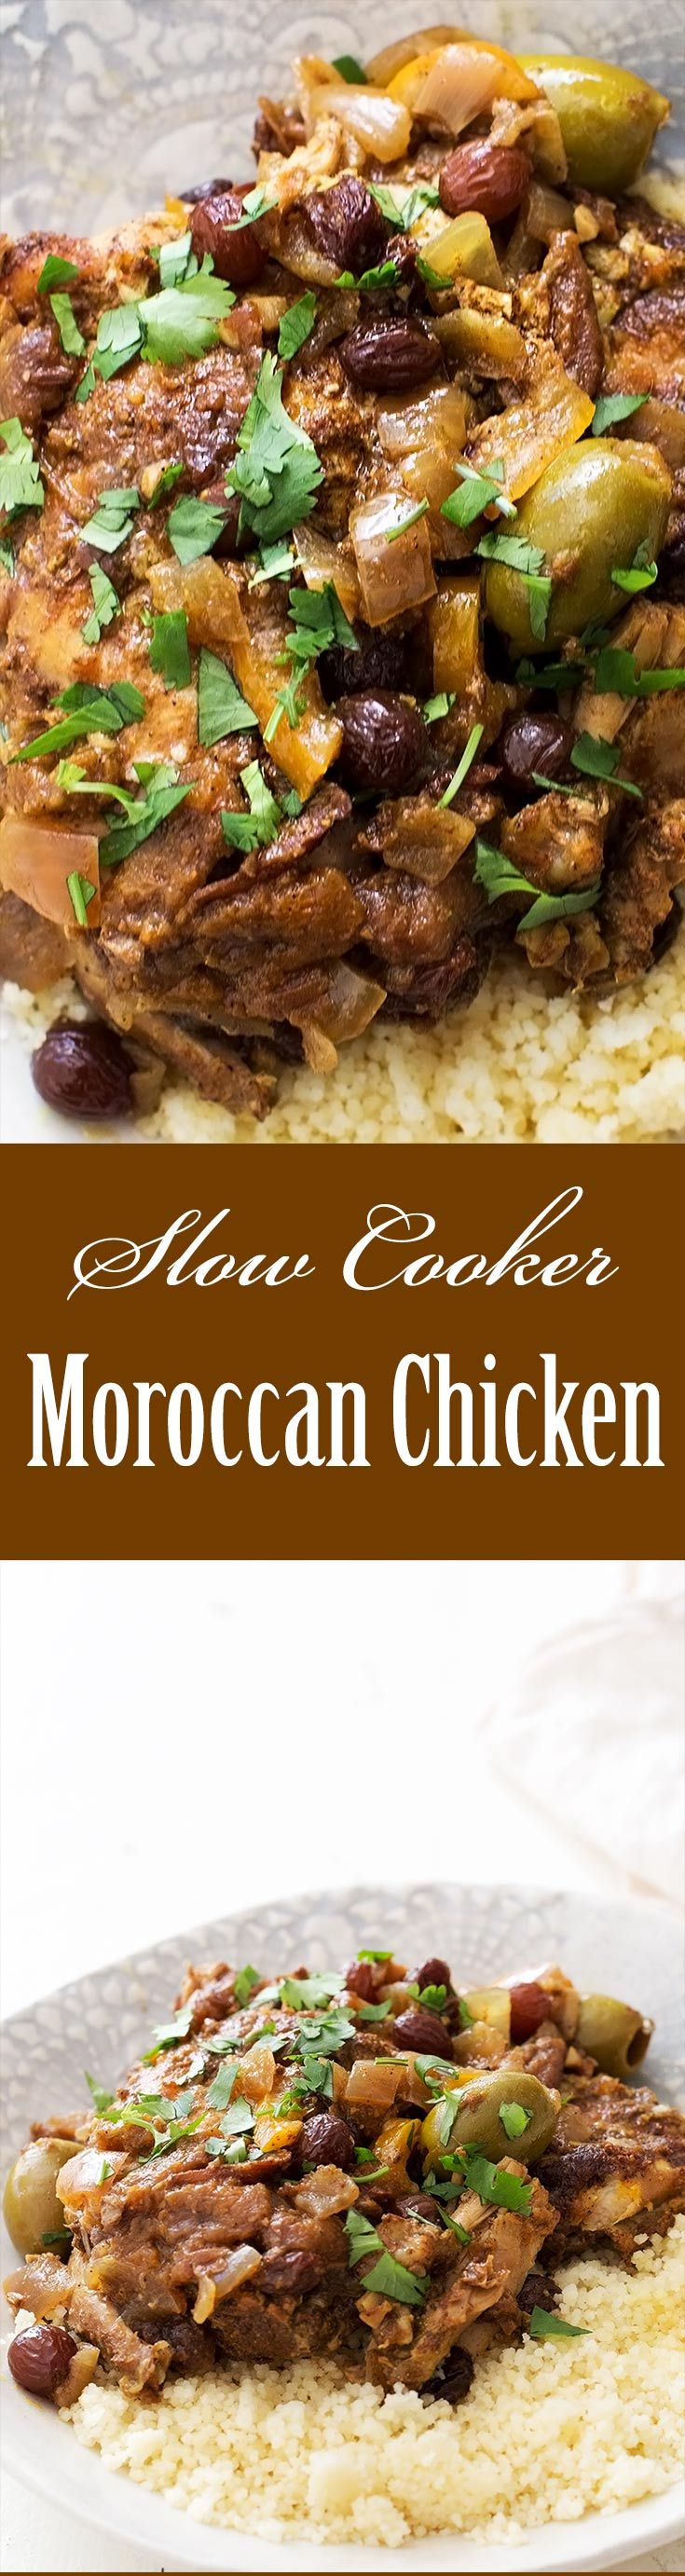 Slow Cooker Moroccan Chicken ~ Don't have a tagine? Make Moroccan chicken in a crockpot, it's easy! Chicken thighs, plenty of spices, onions, green olives, lemons, raisins, cooked low and slow until fall apart tender. ~ SimplyRecipes.com